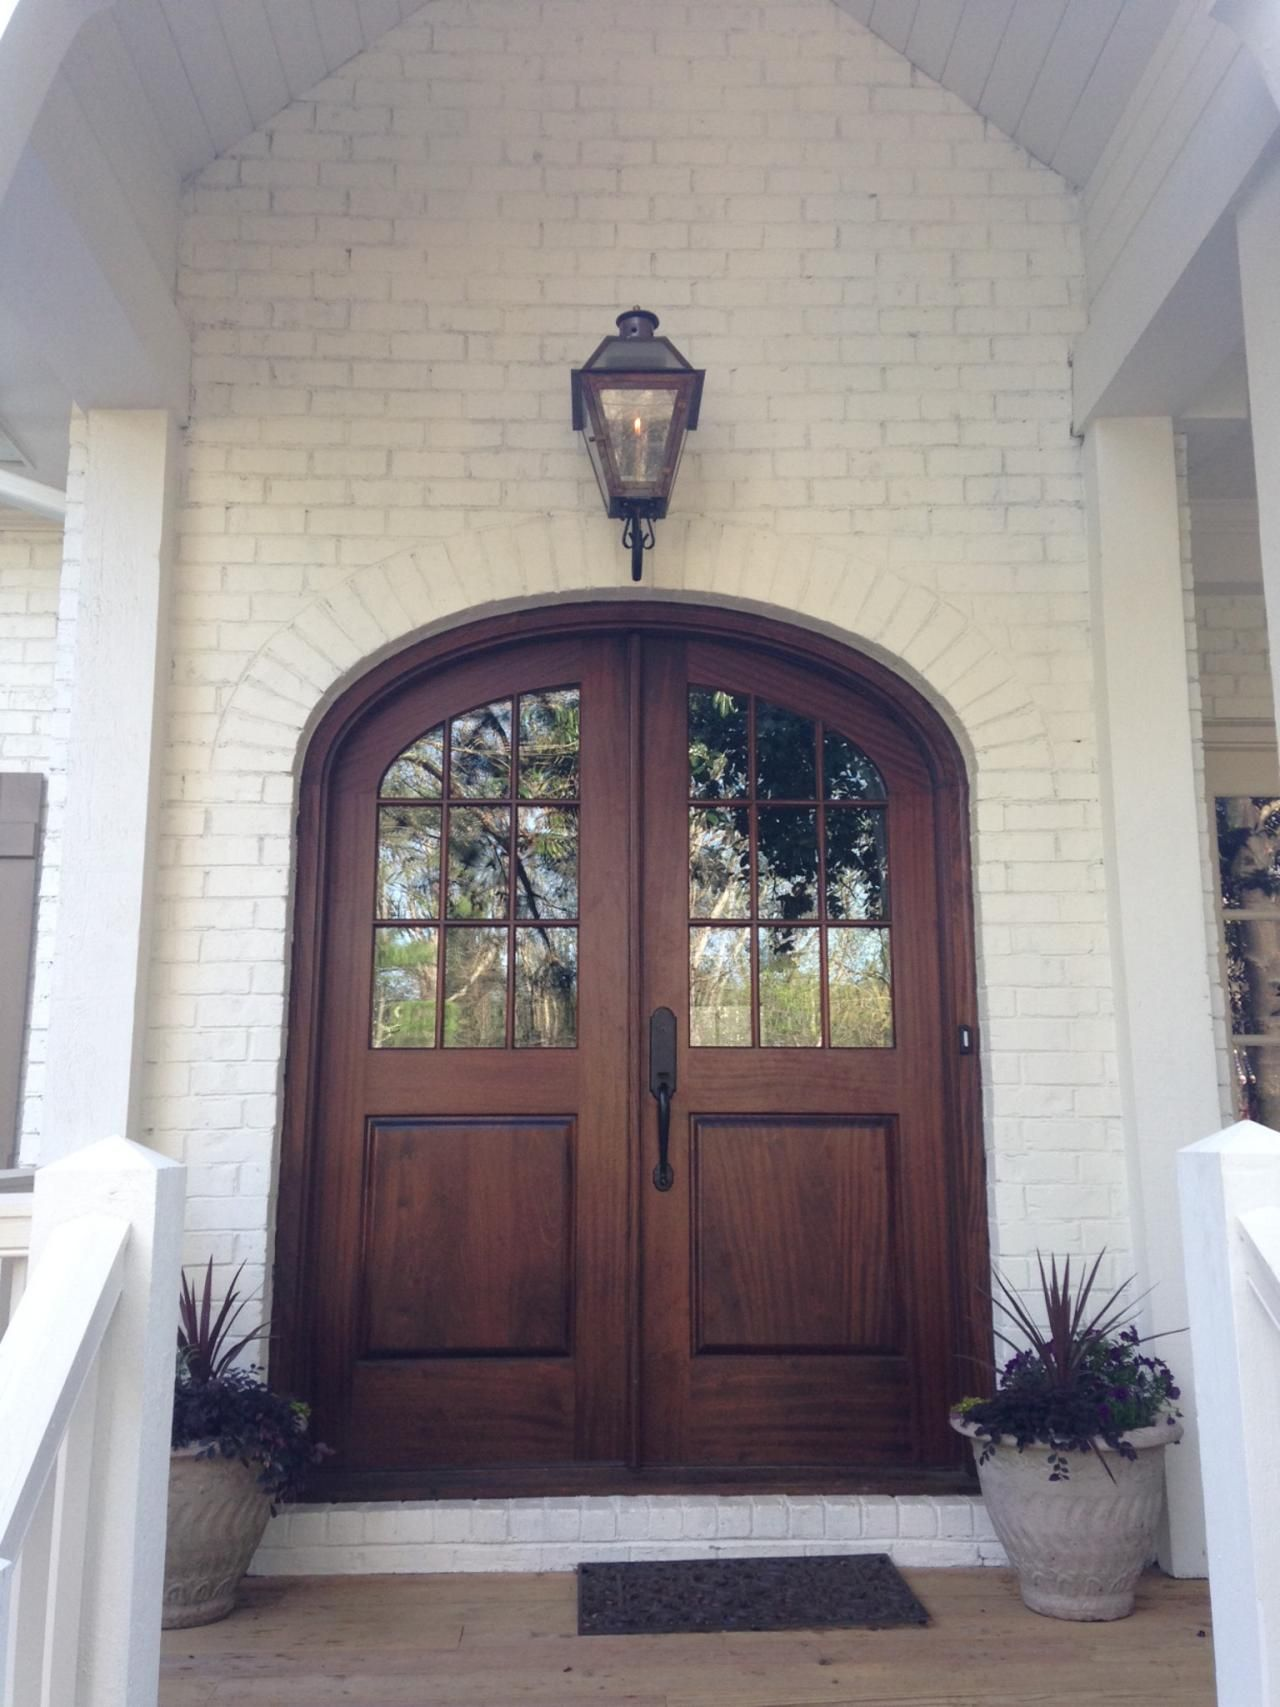 arched top french door. this is not a fiberglass door. this is a